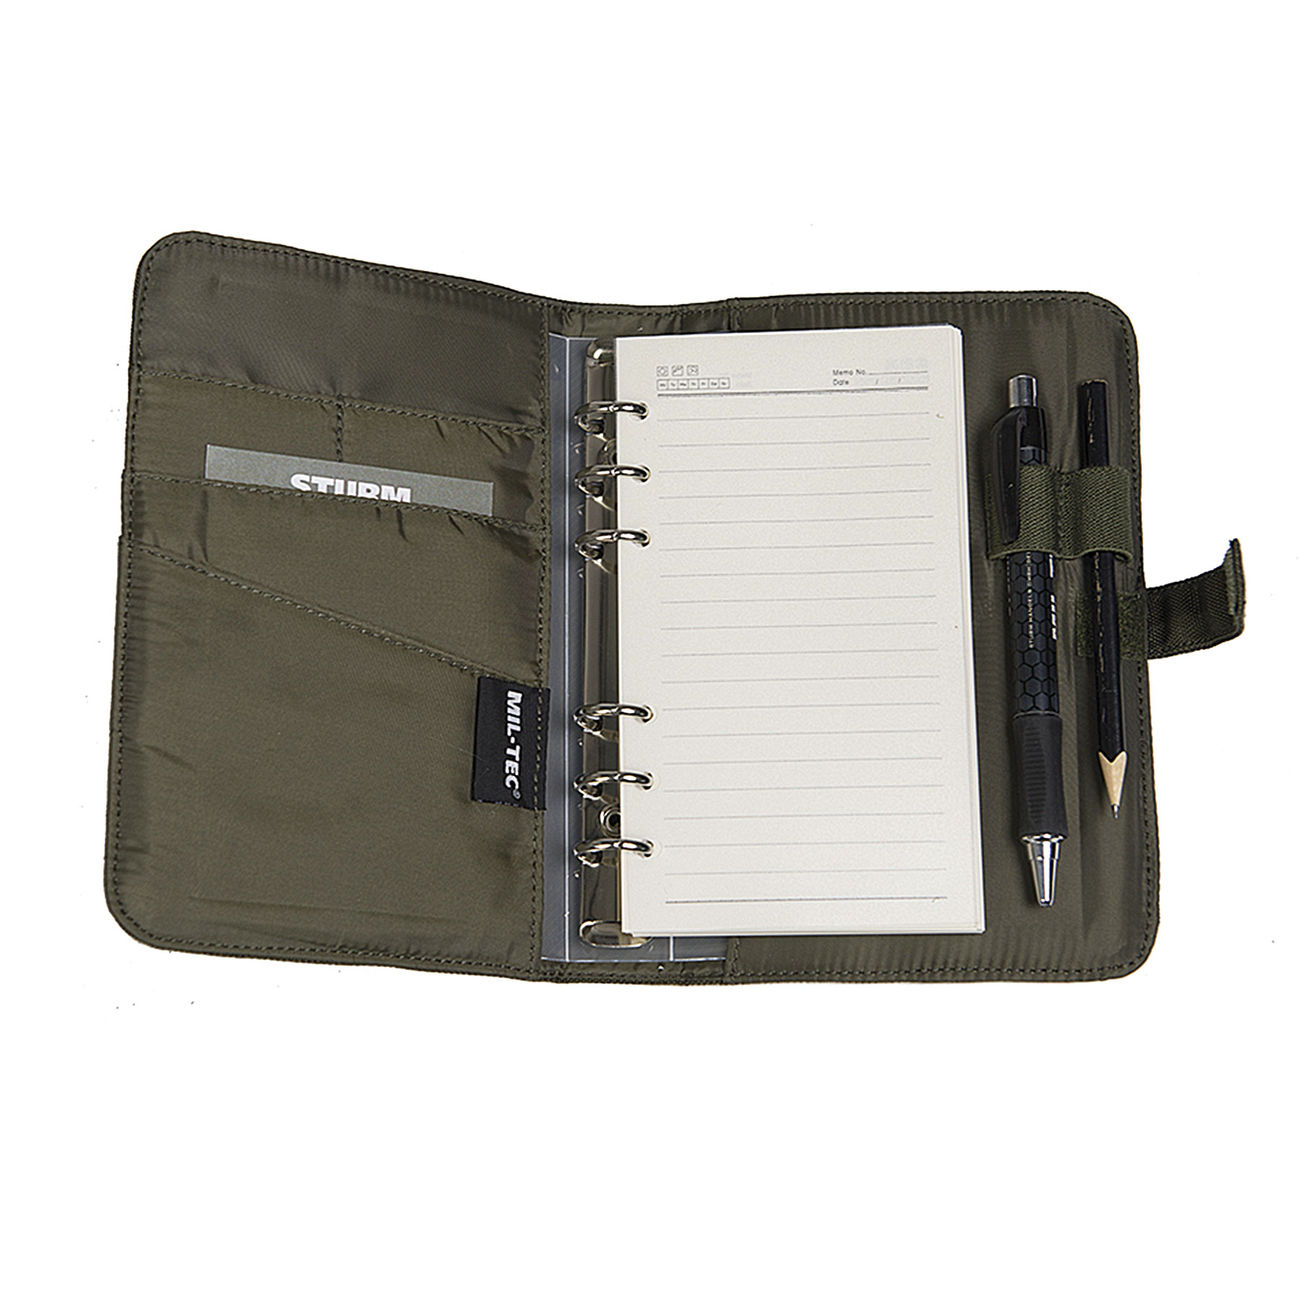 Mil-tec Tactical Notebook Small Multitarn Notizbuch Koffer, Taschen & Accessoires